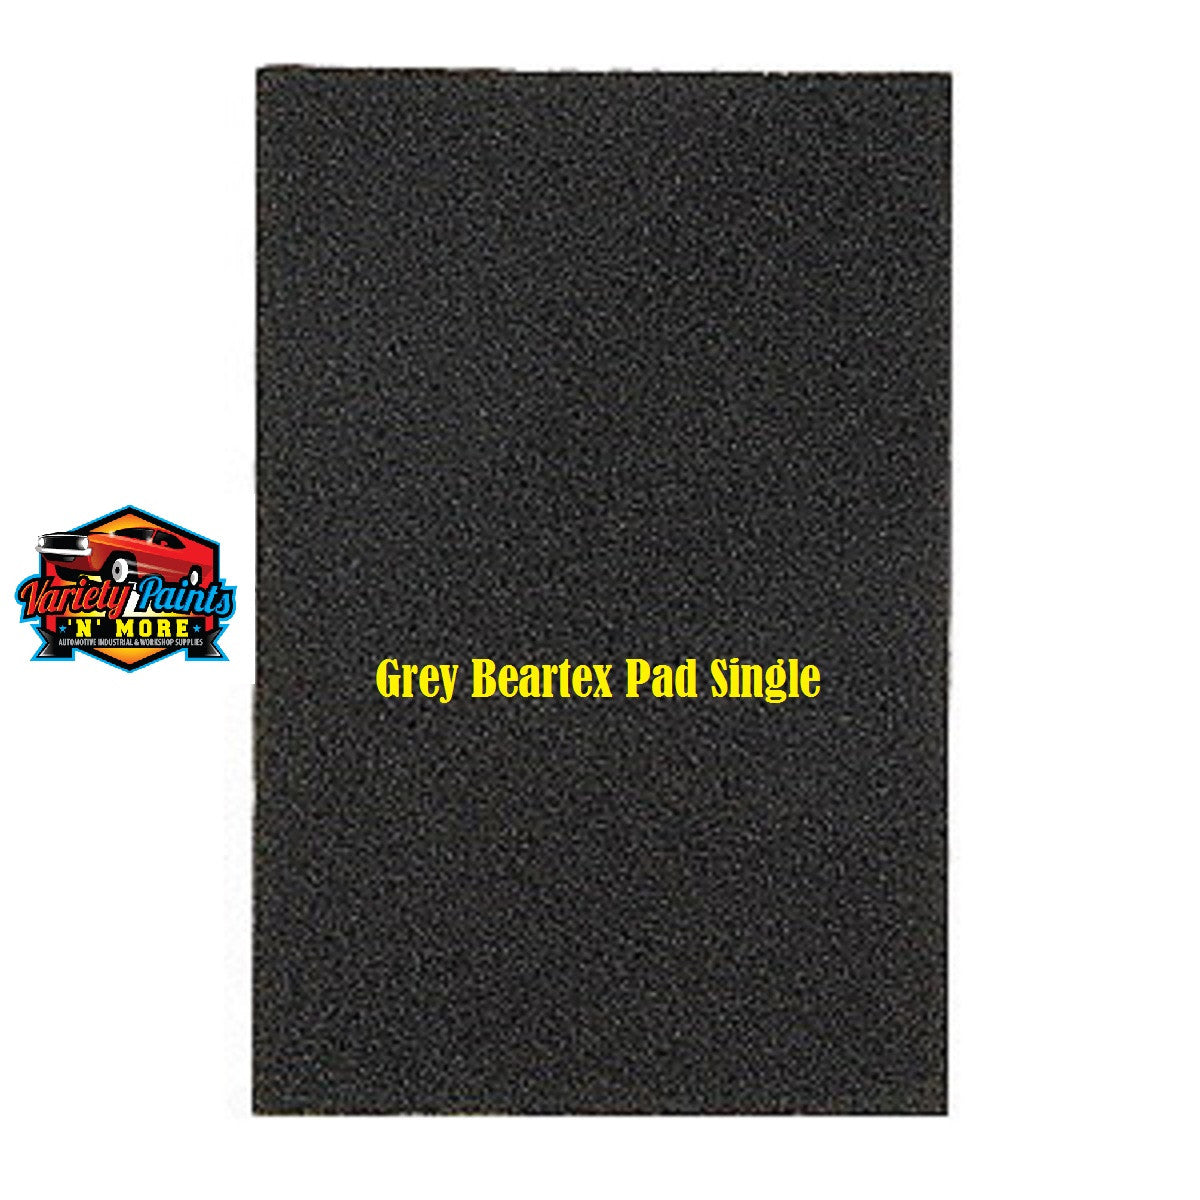 Norton Beartex Single Pad Grey 150mm X 230mm Variety Paints